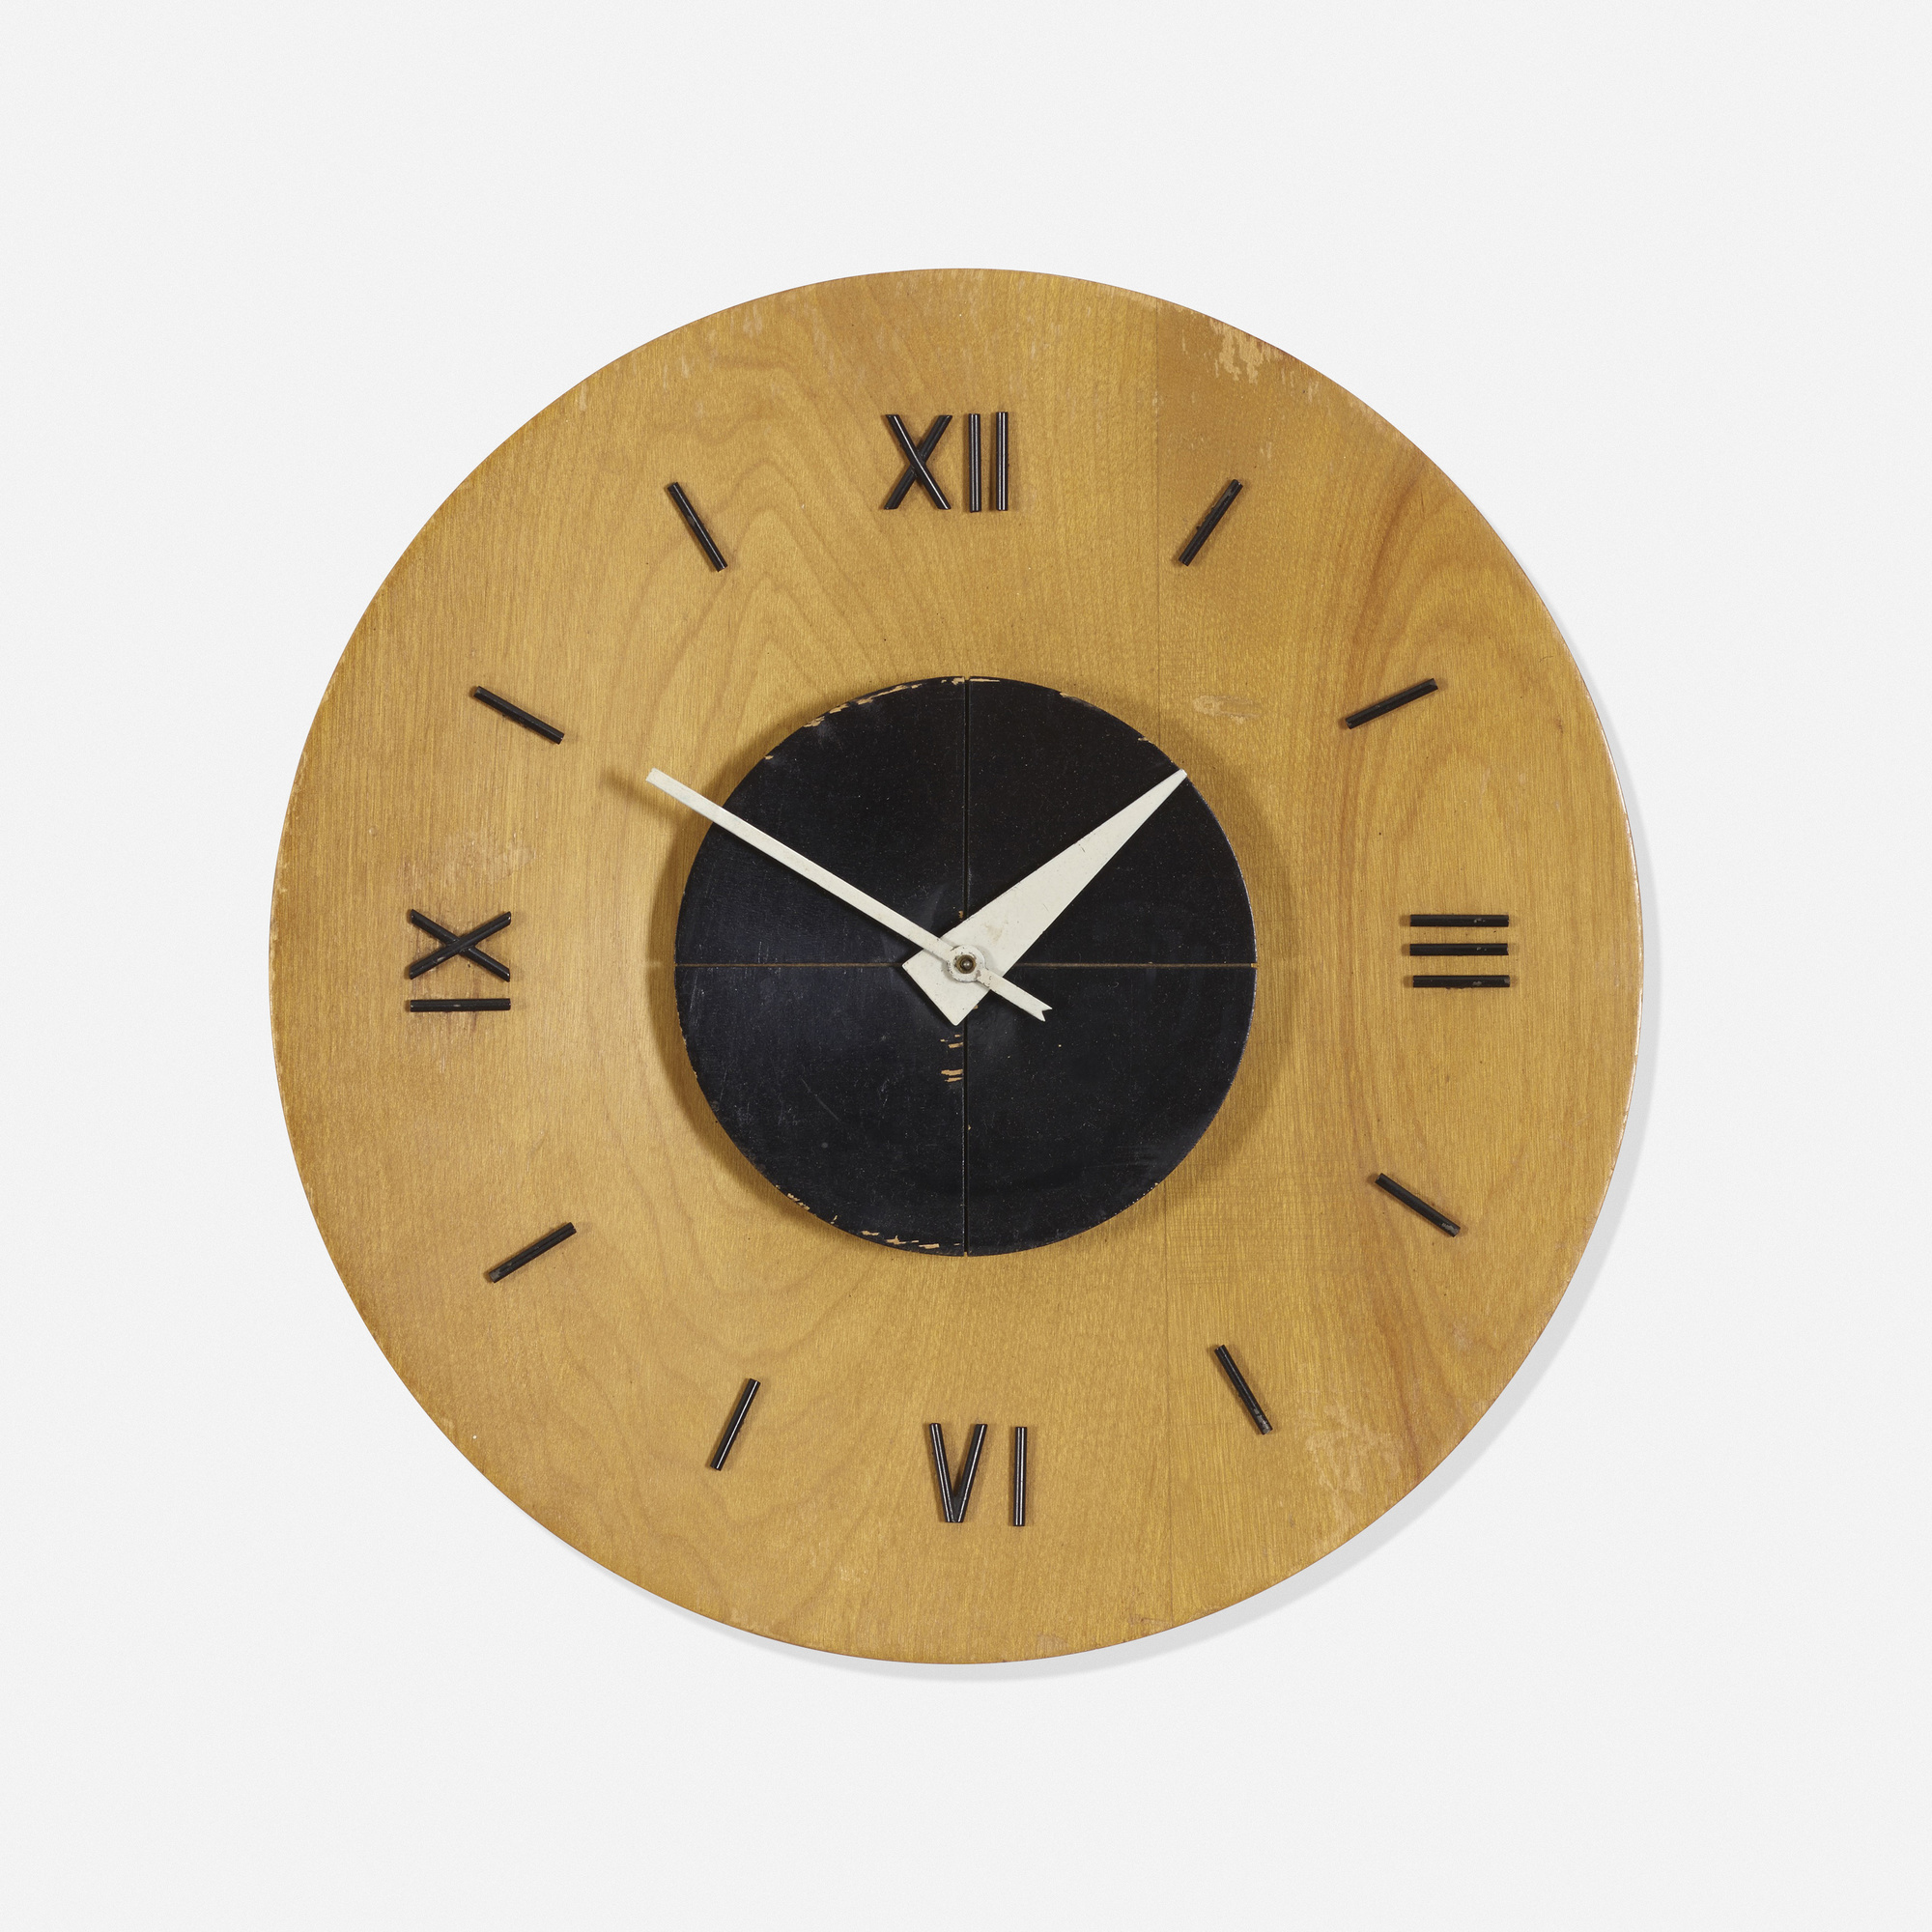 633: George Nelson & Associates / wall clock, model 4758 (1 of 1)